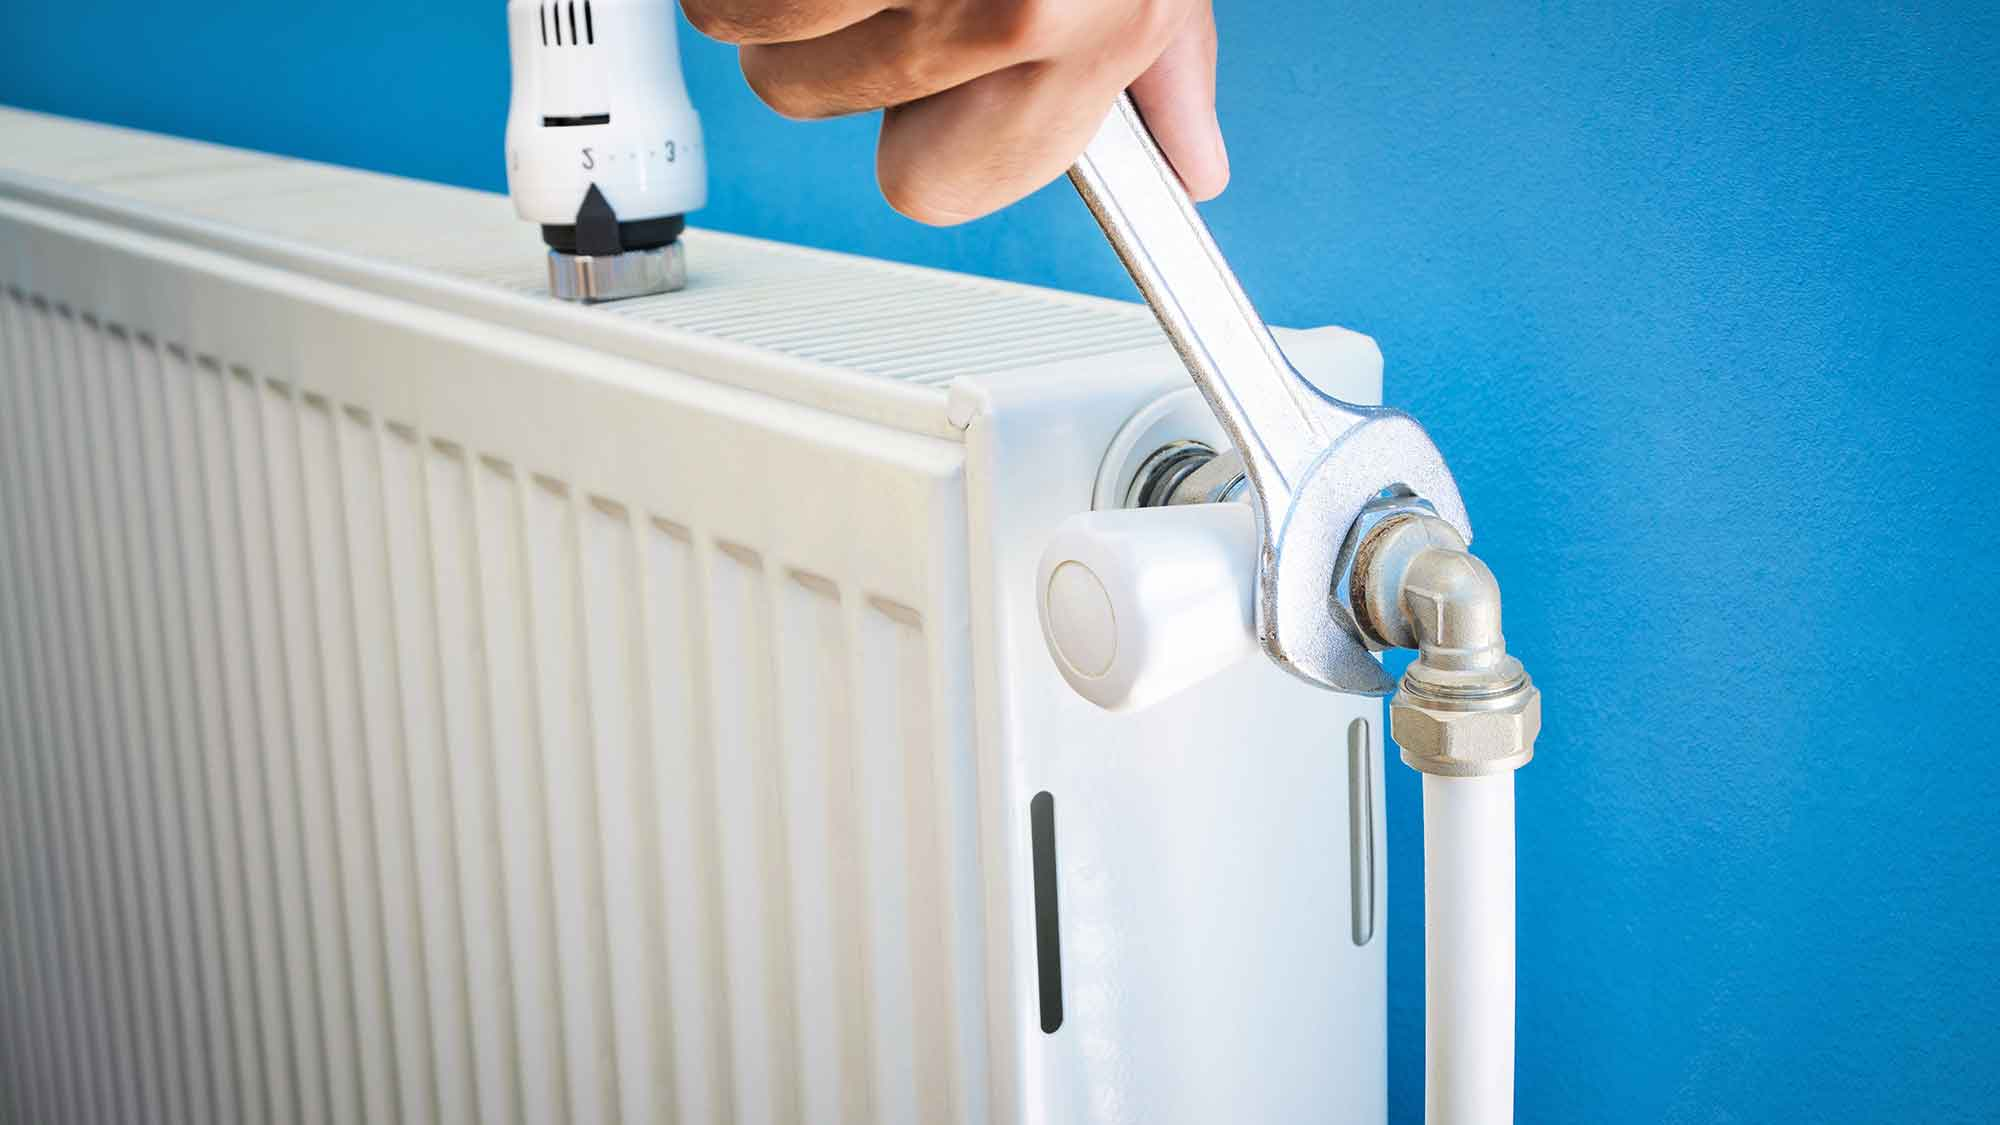 central heating servicing essex maintenance leigh on sea radiators